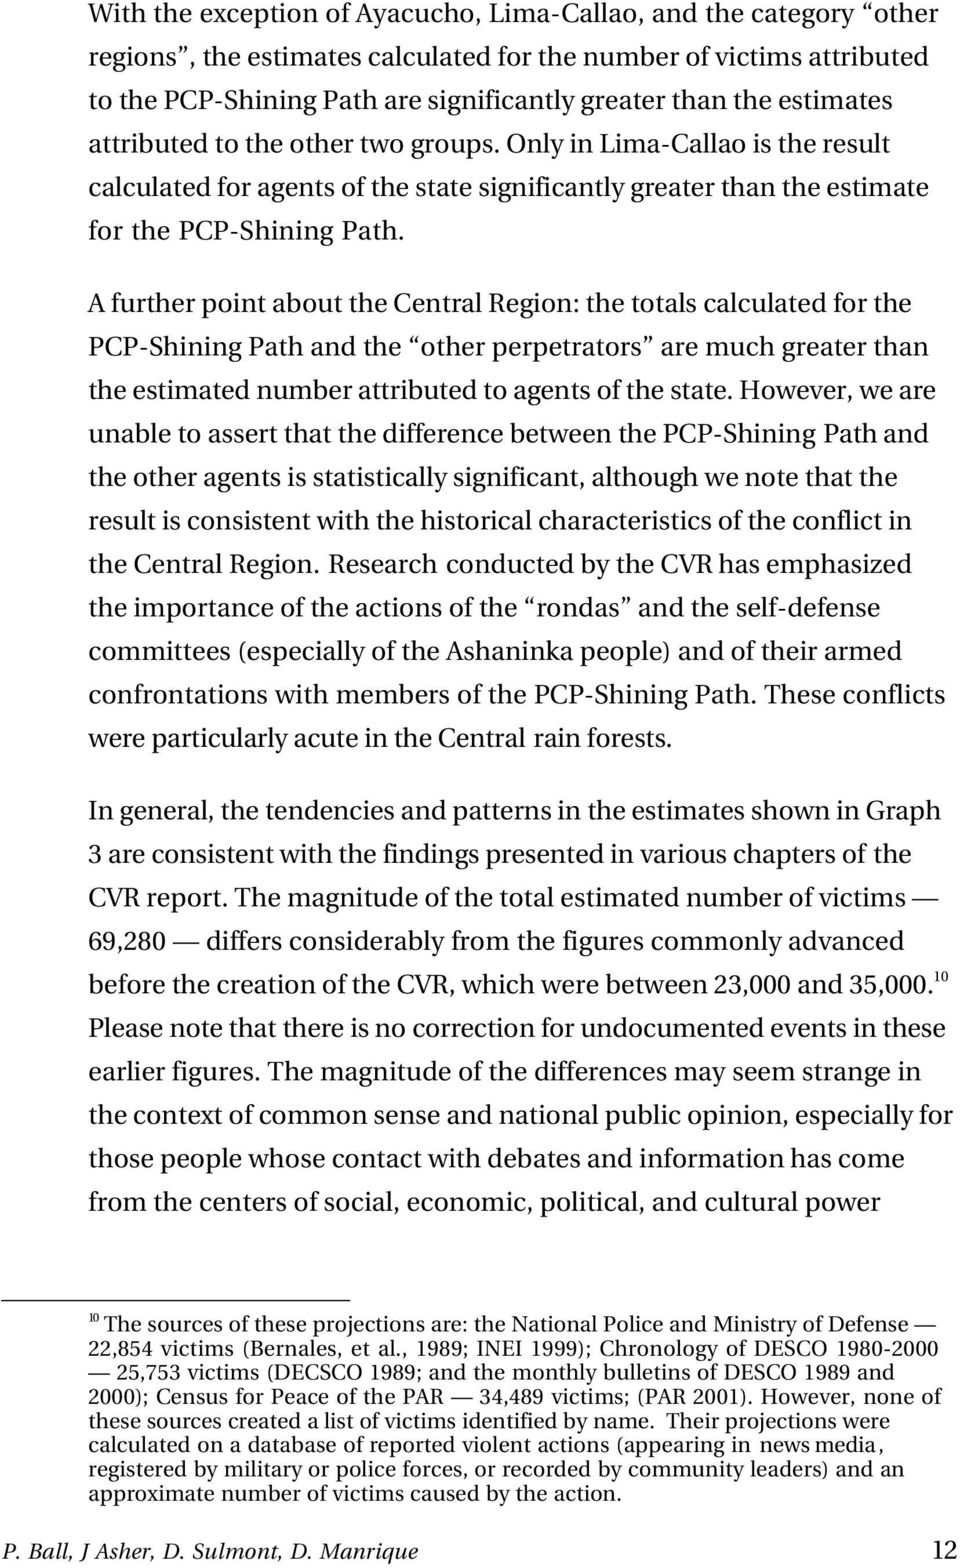 A further point about the Central Region: the totals calculated for the PCP-Shining Path and the other perpetrators are much greater than the estimated number attributed to agents of the state.